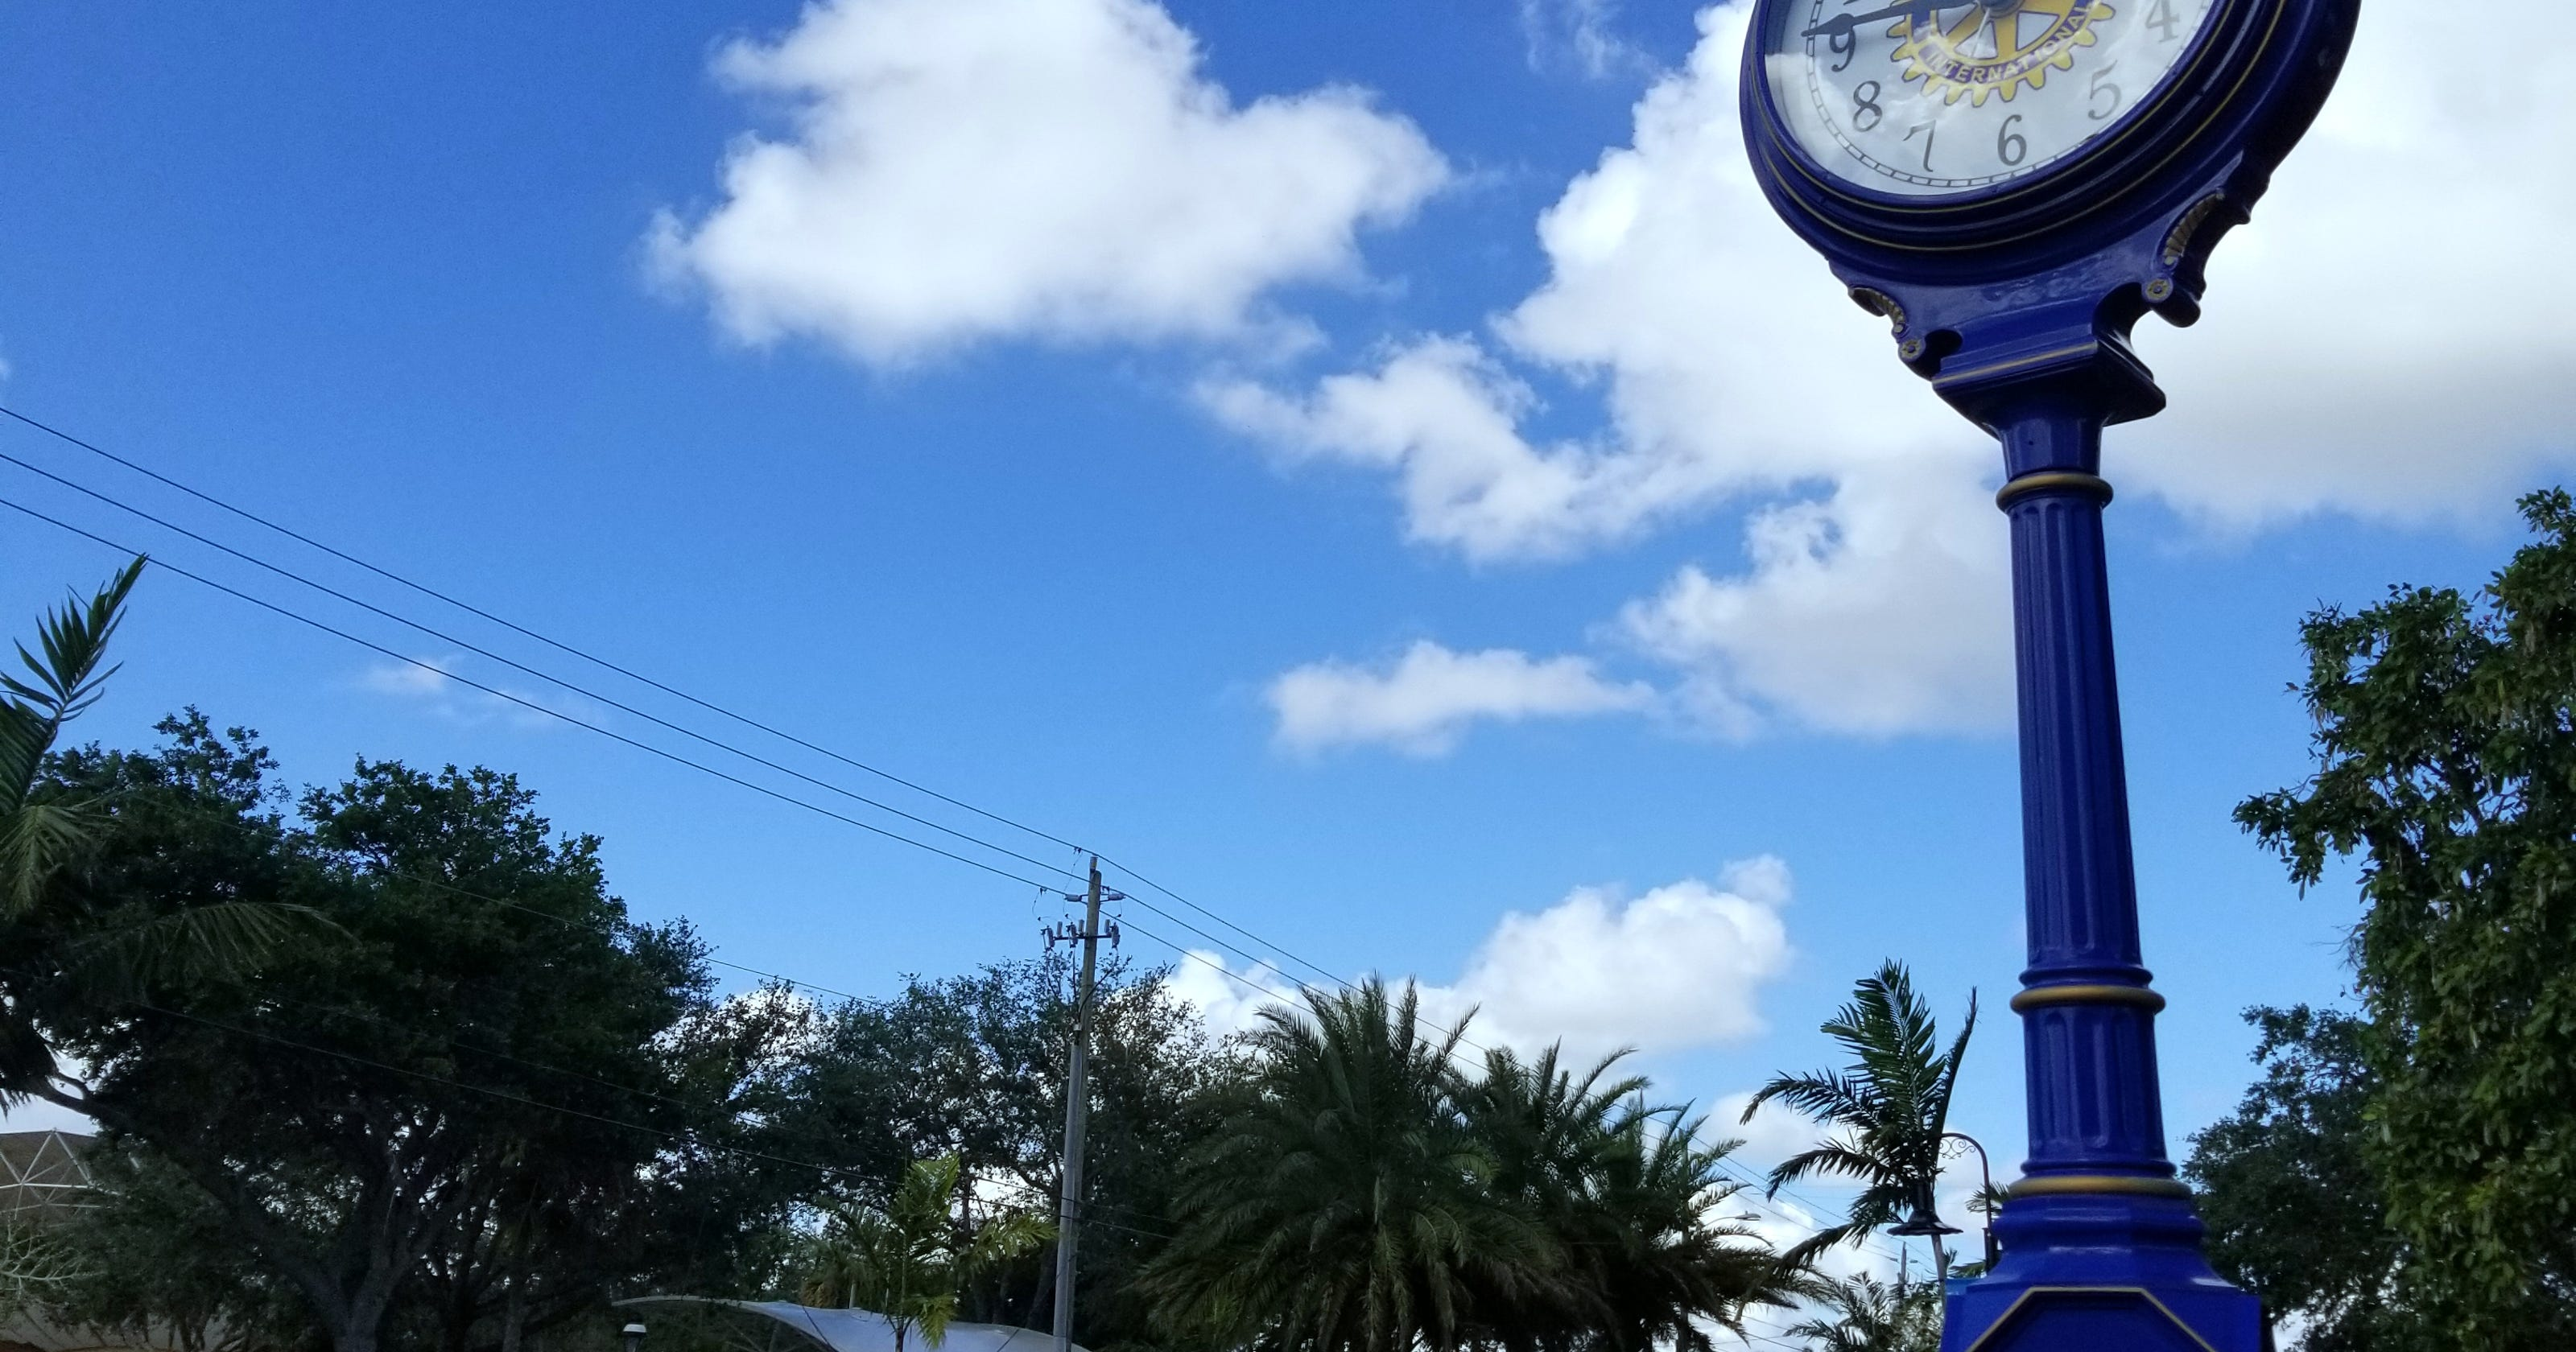 Bonita springs businesses struggling after irma mightylinksfo